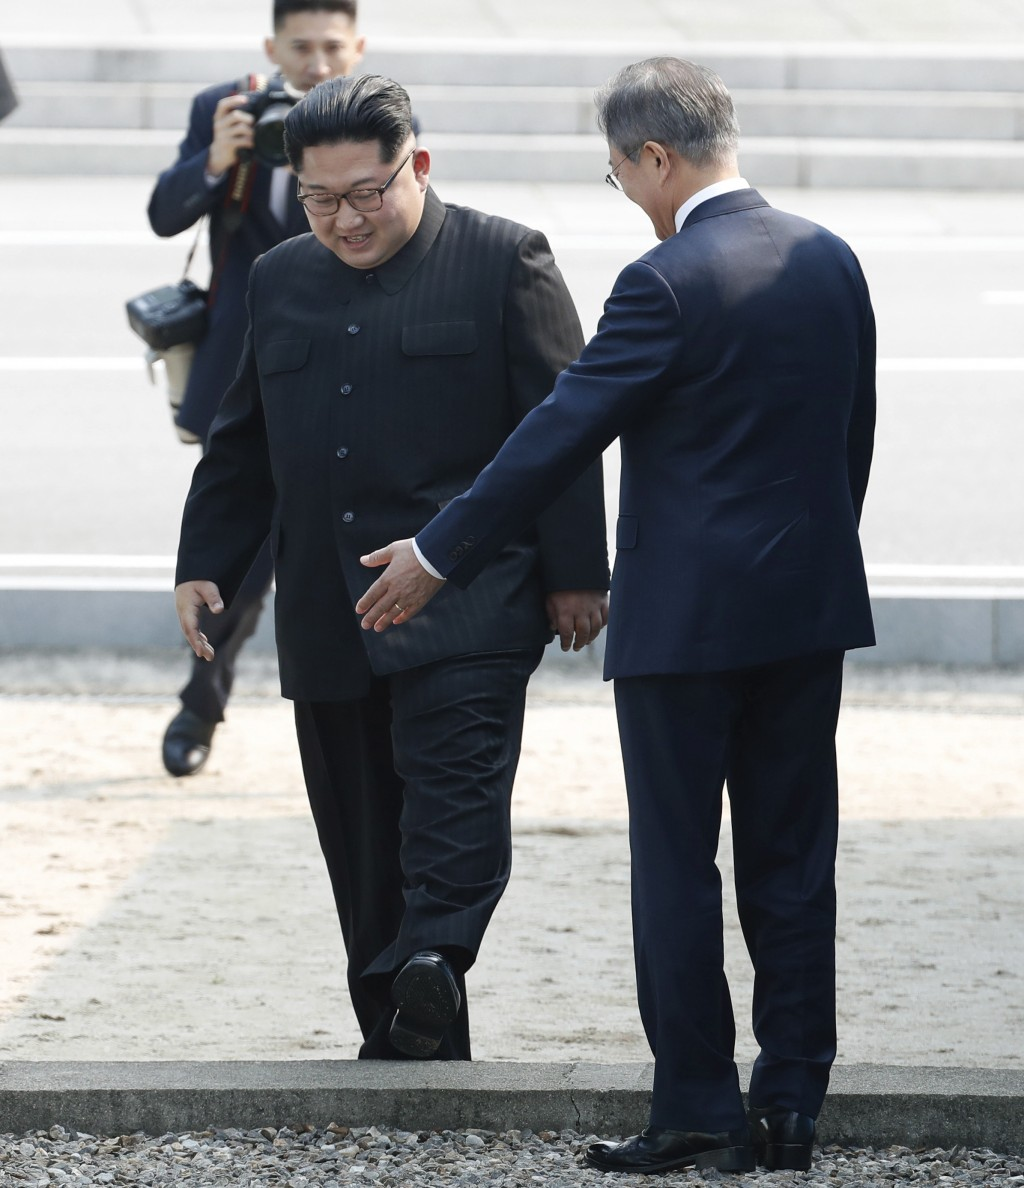 FILE - In this April 27, 2018 file photo, North Korean leader Kim Jong Un, left, crosses the military demarcation line to meet with South Korean Presi...